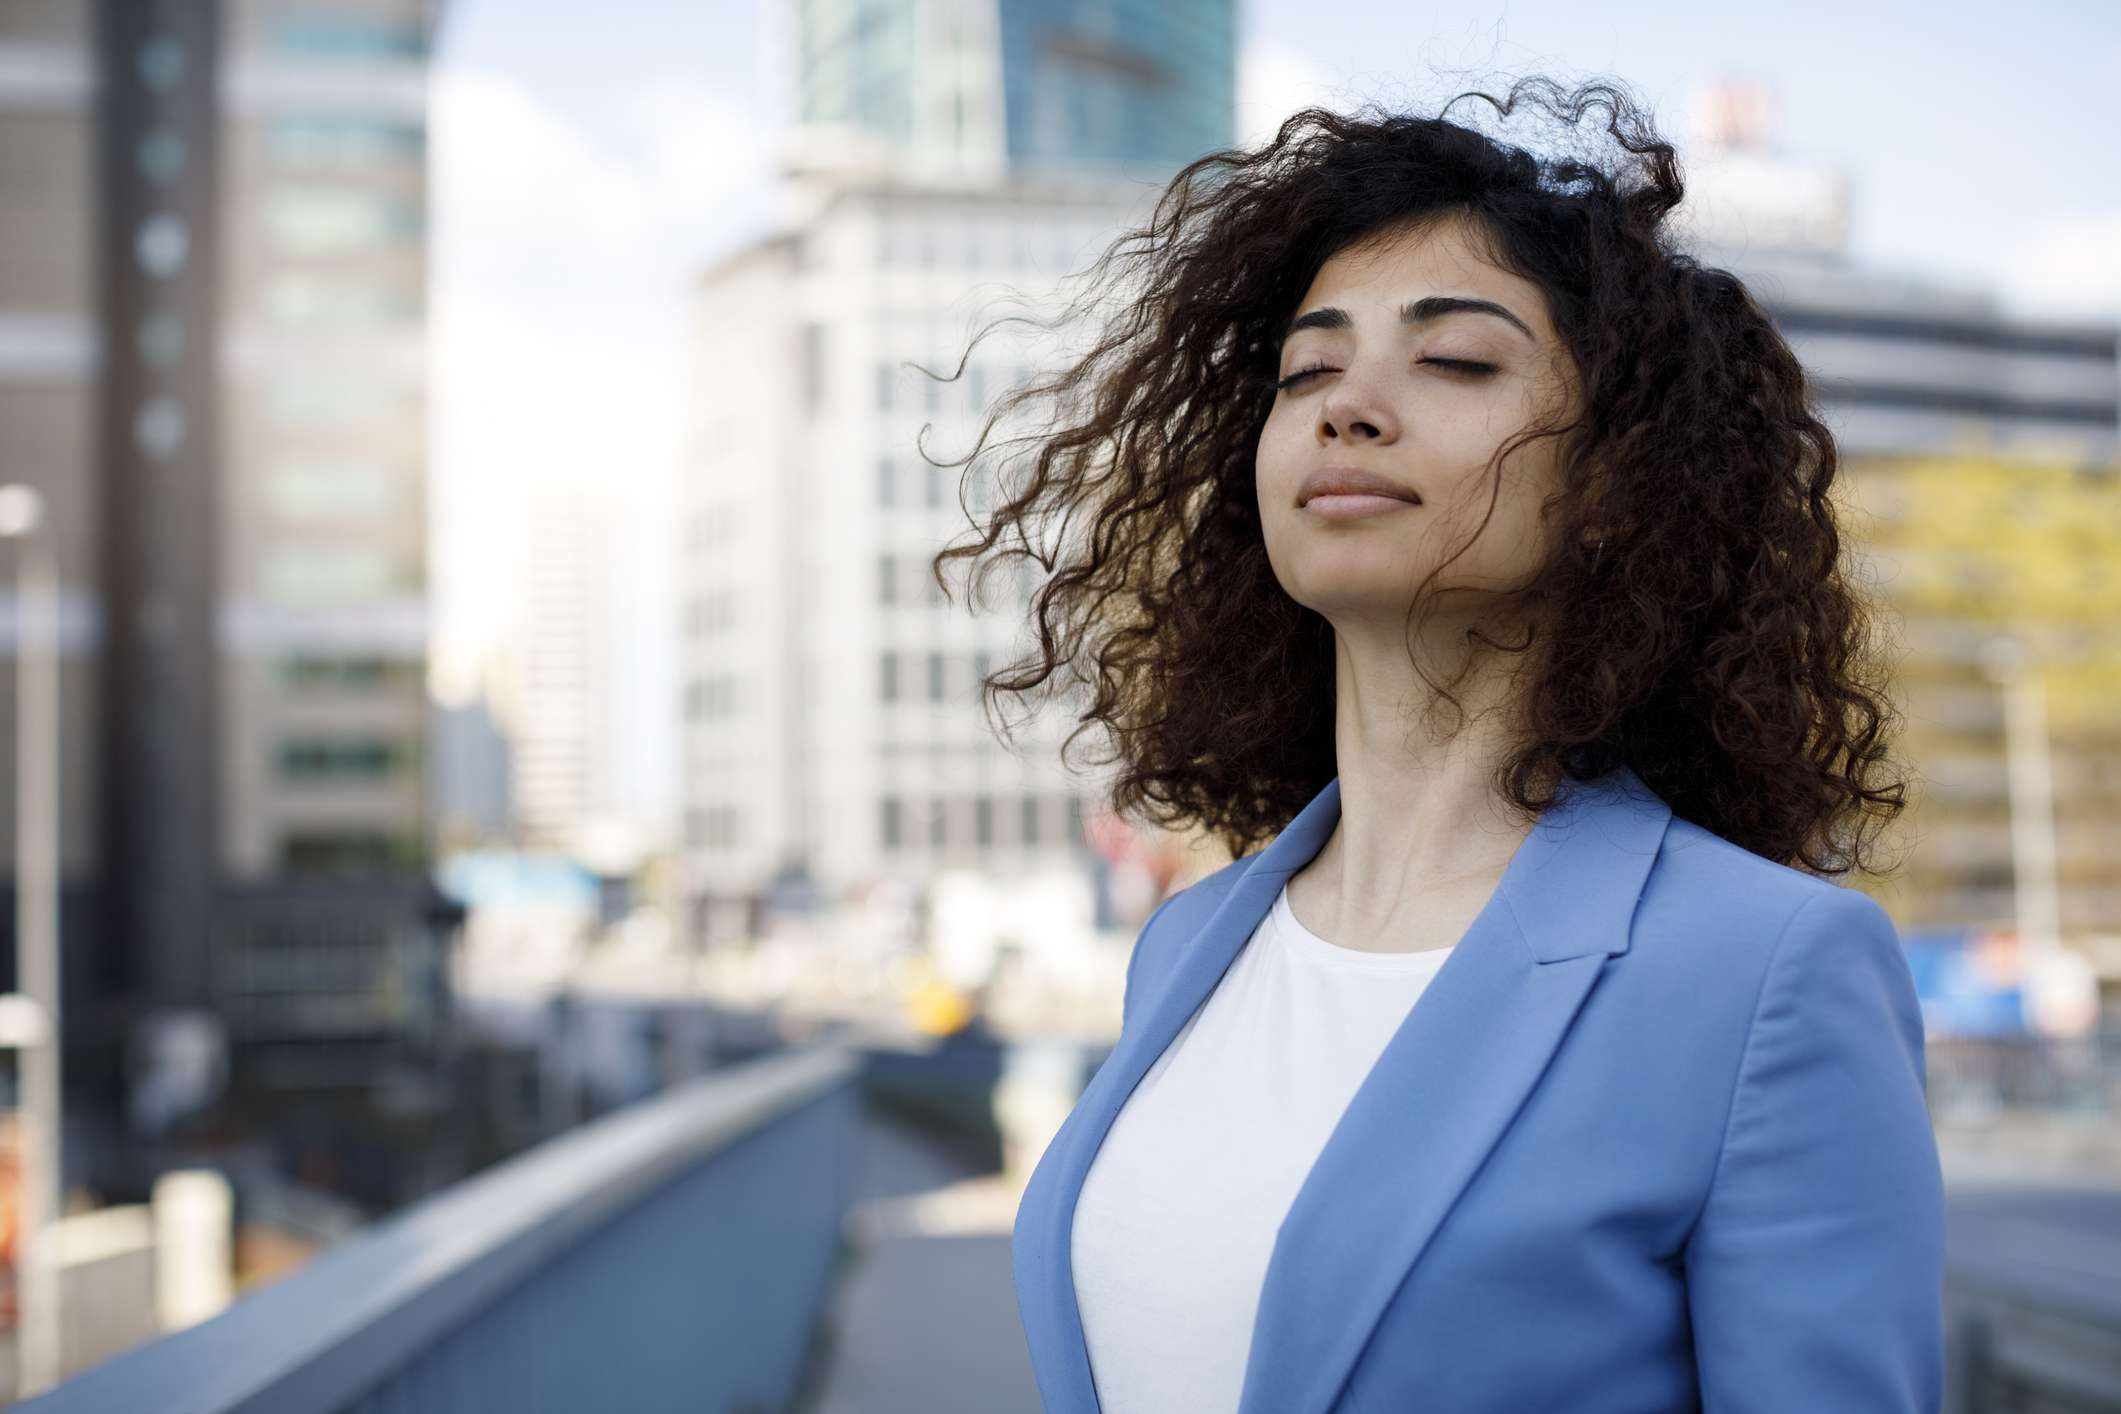 Businesswoman closing her eyes and taking a deep breath while standing downtown